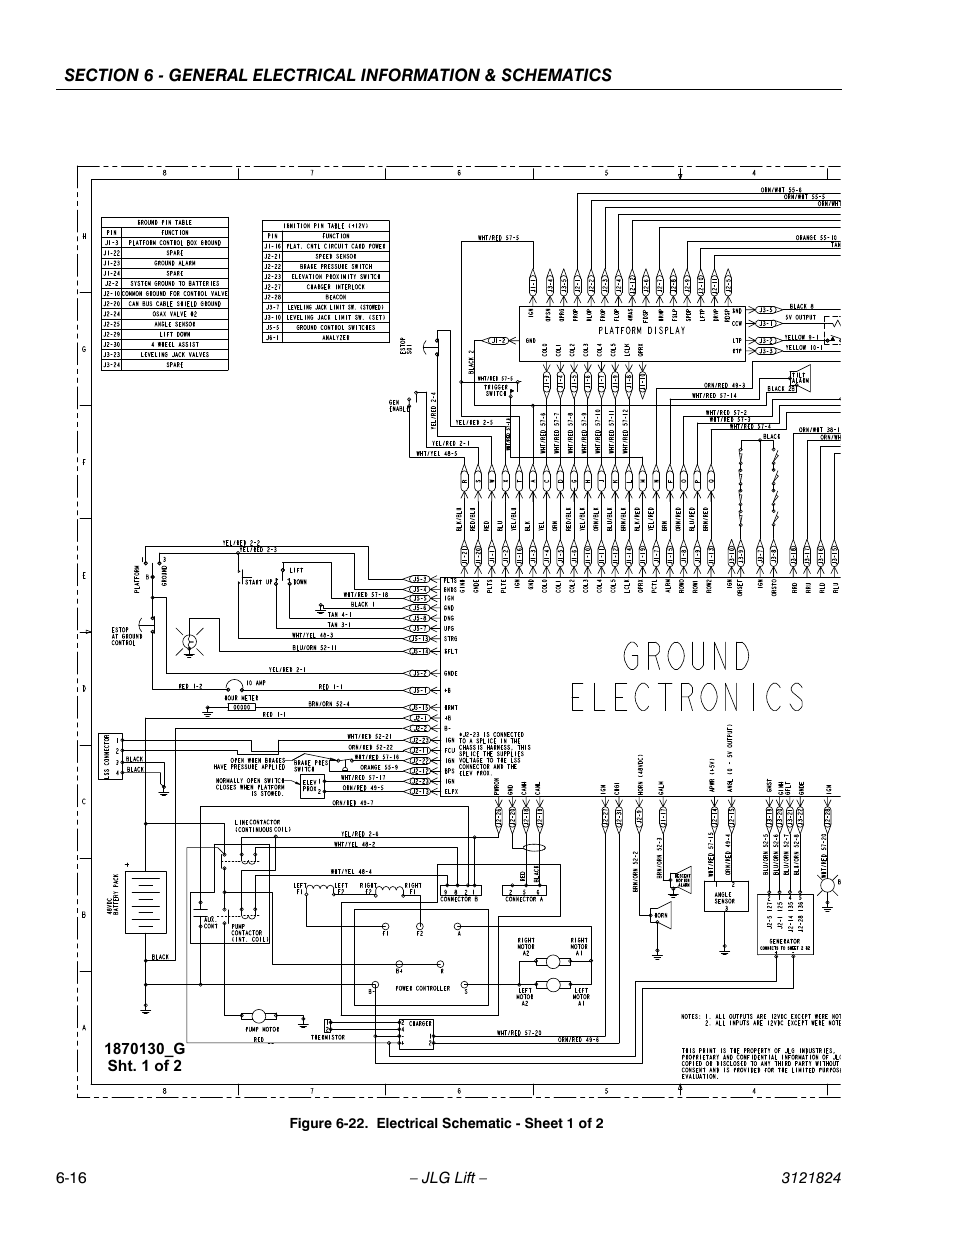 Electrical schematic - sheet 1 of 2 -16 | JLG M4069 Service ... on